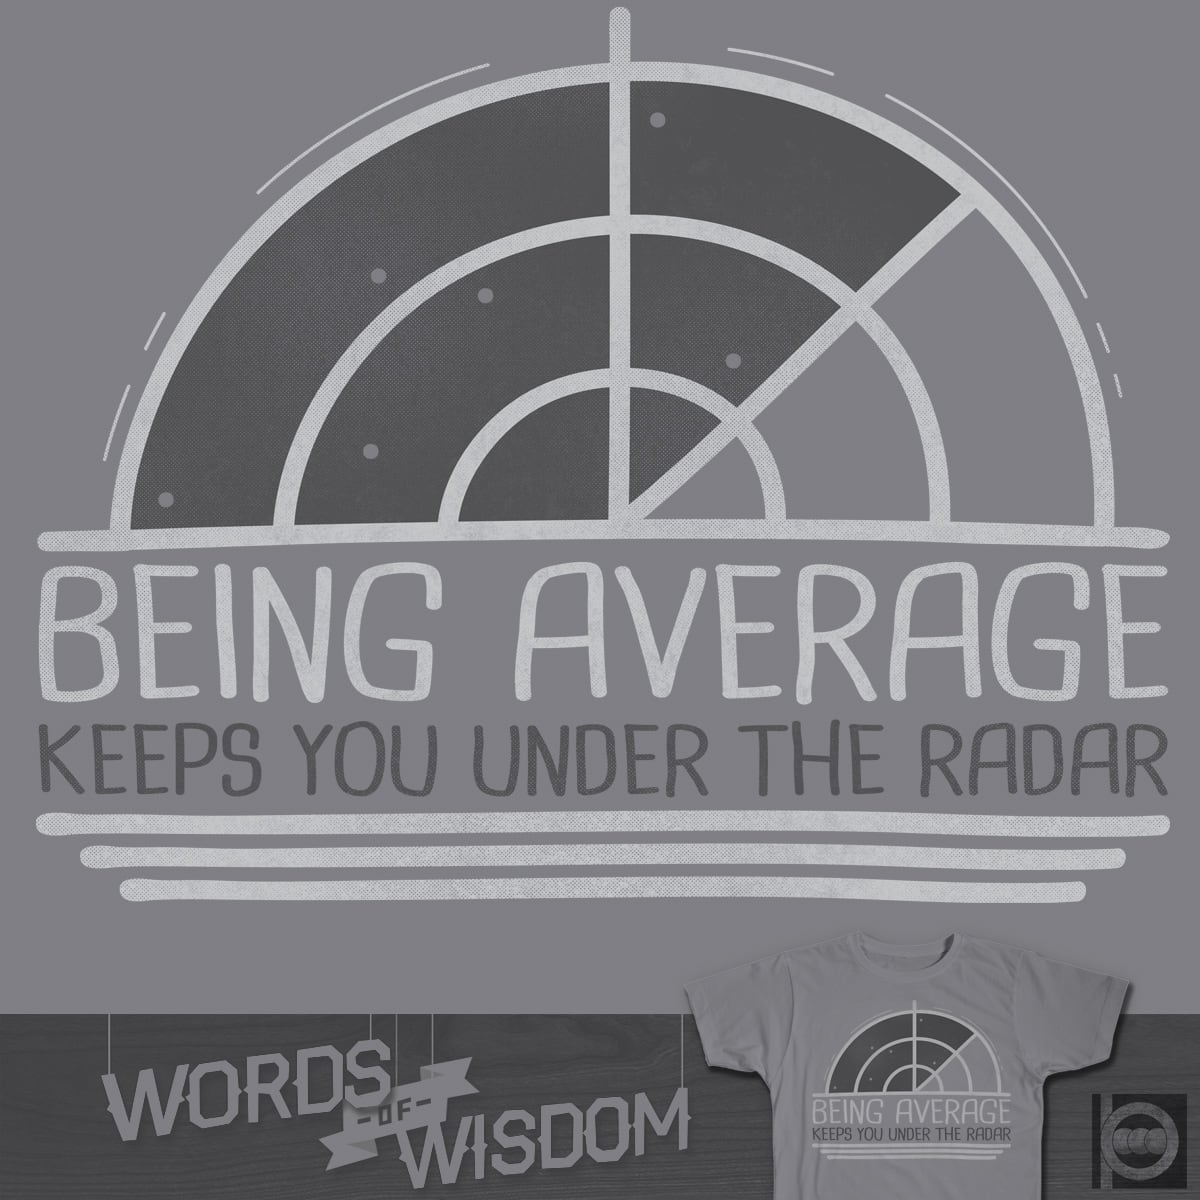 BE AVERAGE by BeanePod on Threadless